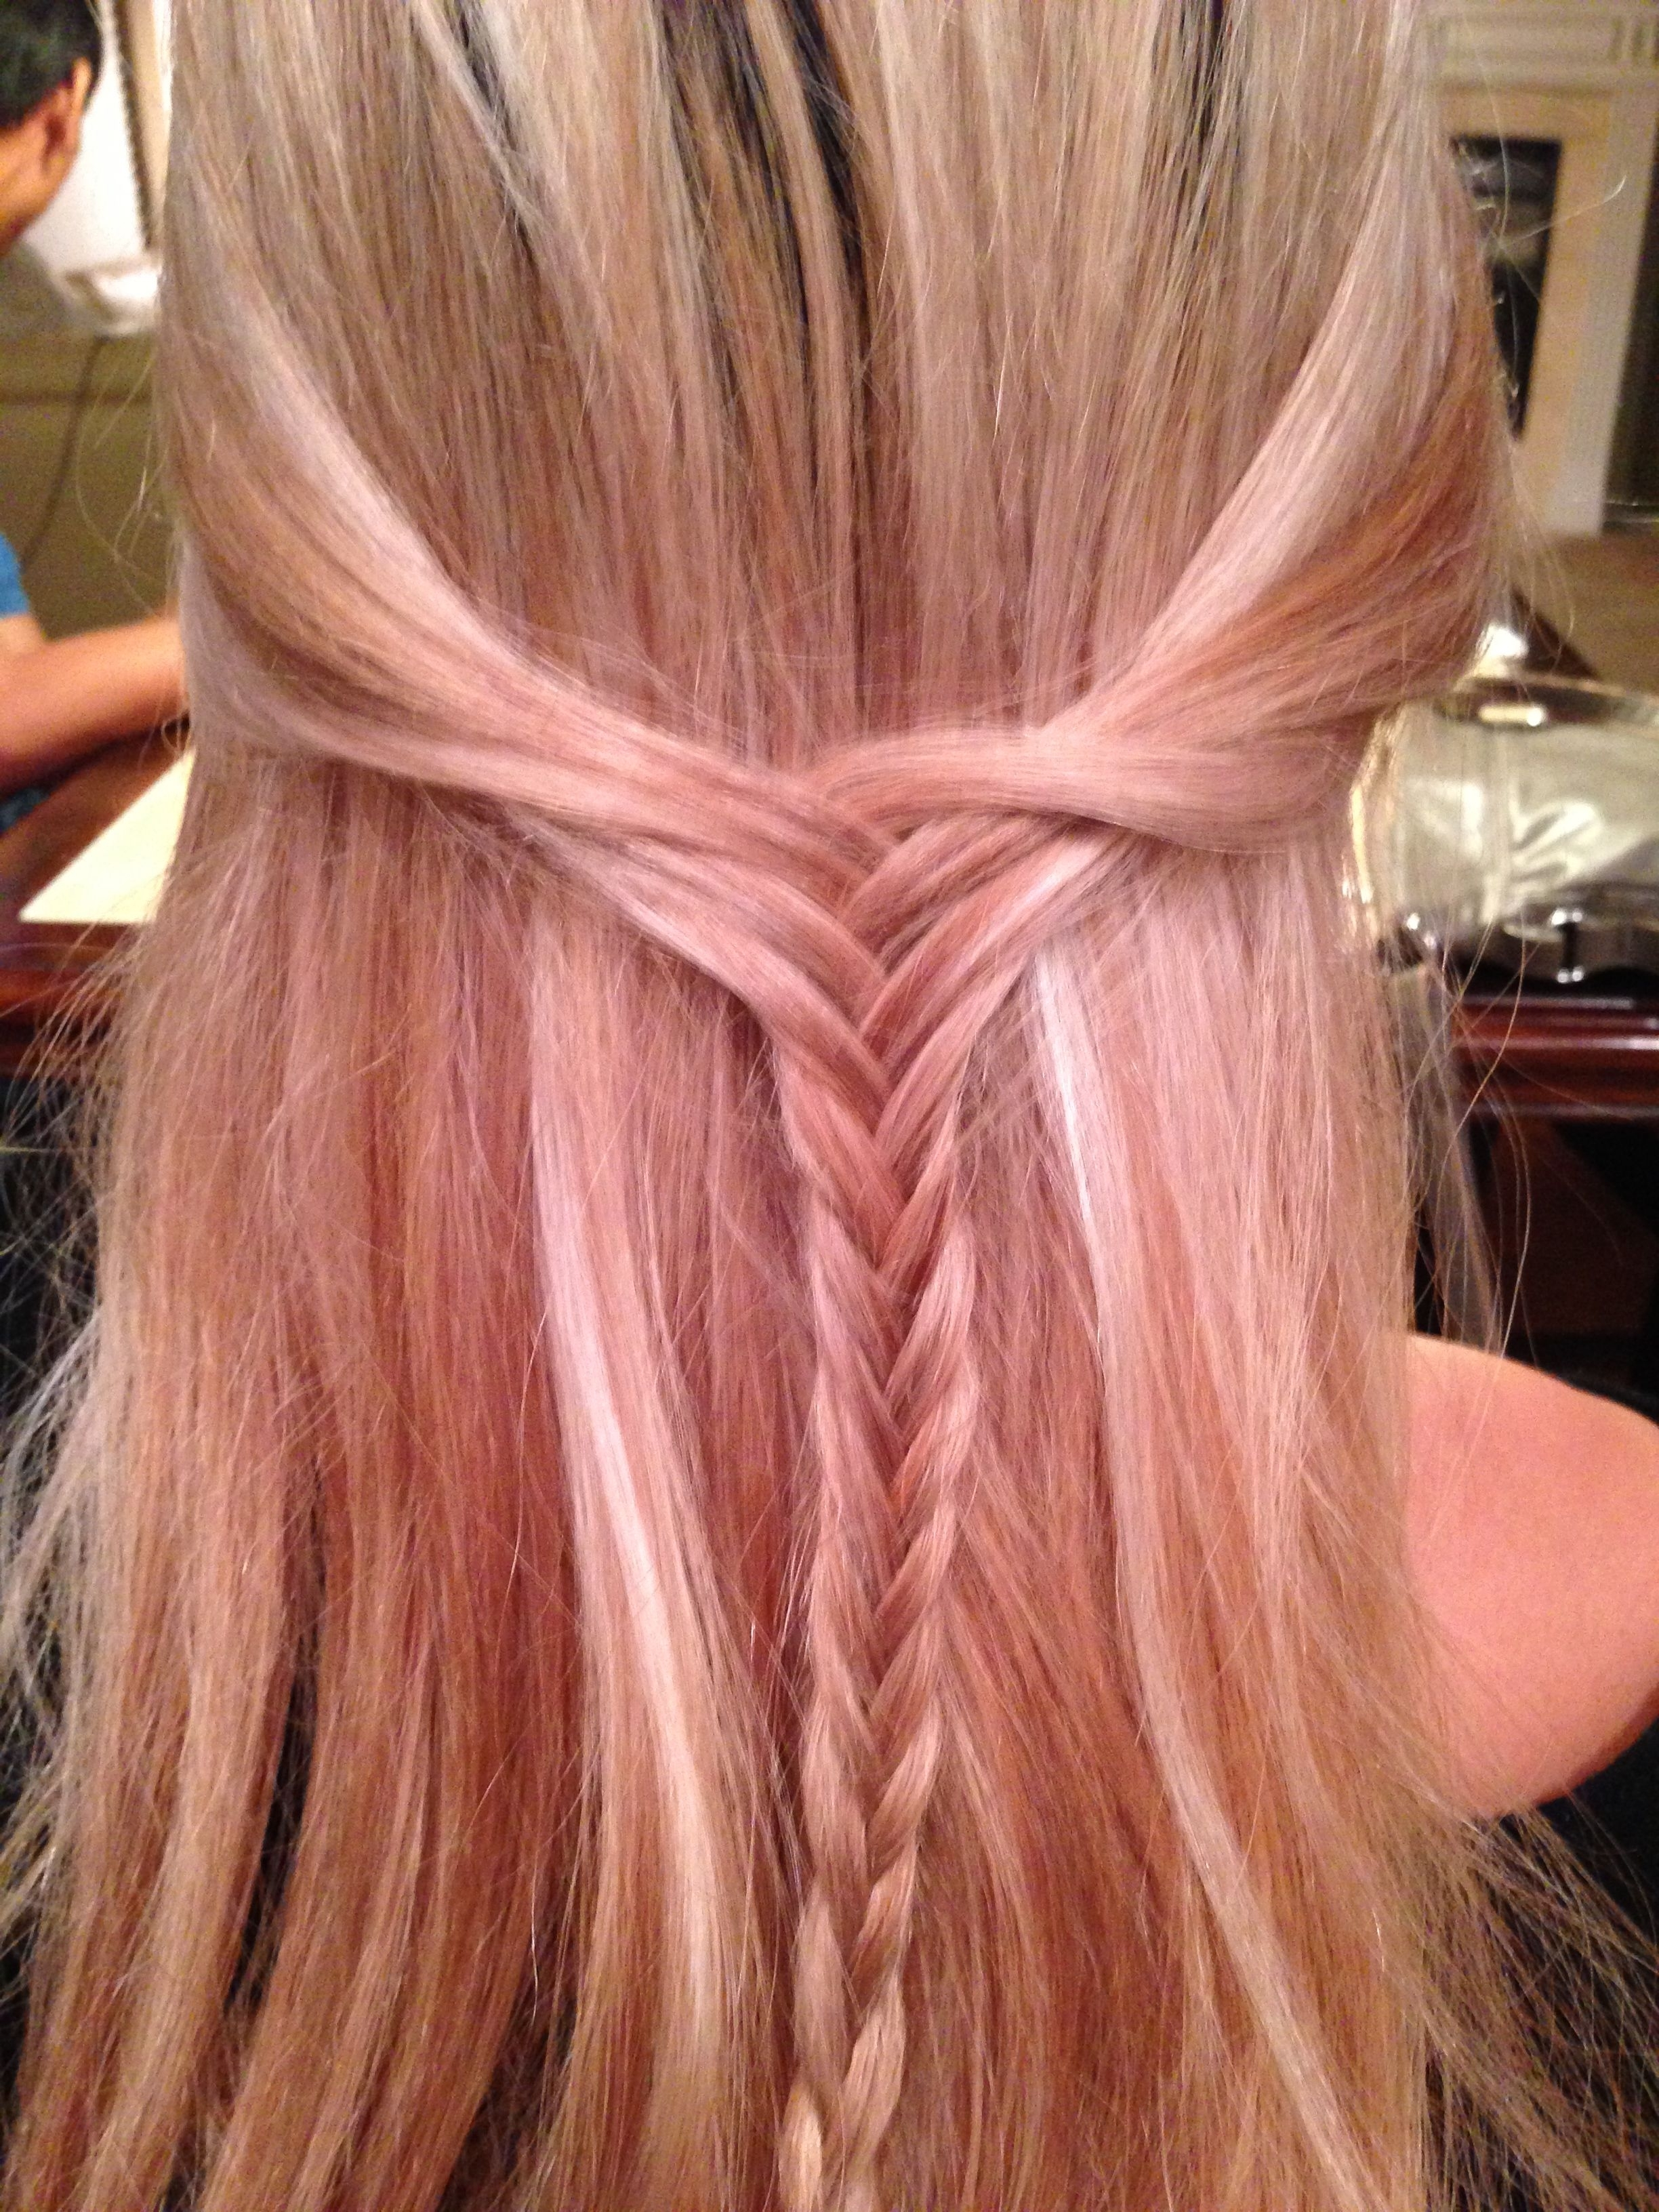 Fishtail Braid, Hair Half Up And Half Down, Wheat Blonde Hair With Throughout Most Current Wheat Blonde Hairstyles (View 10 of 20)